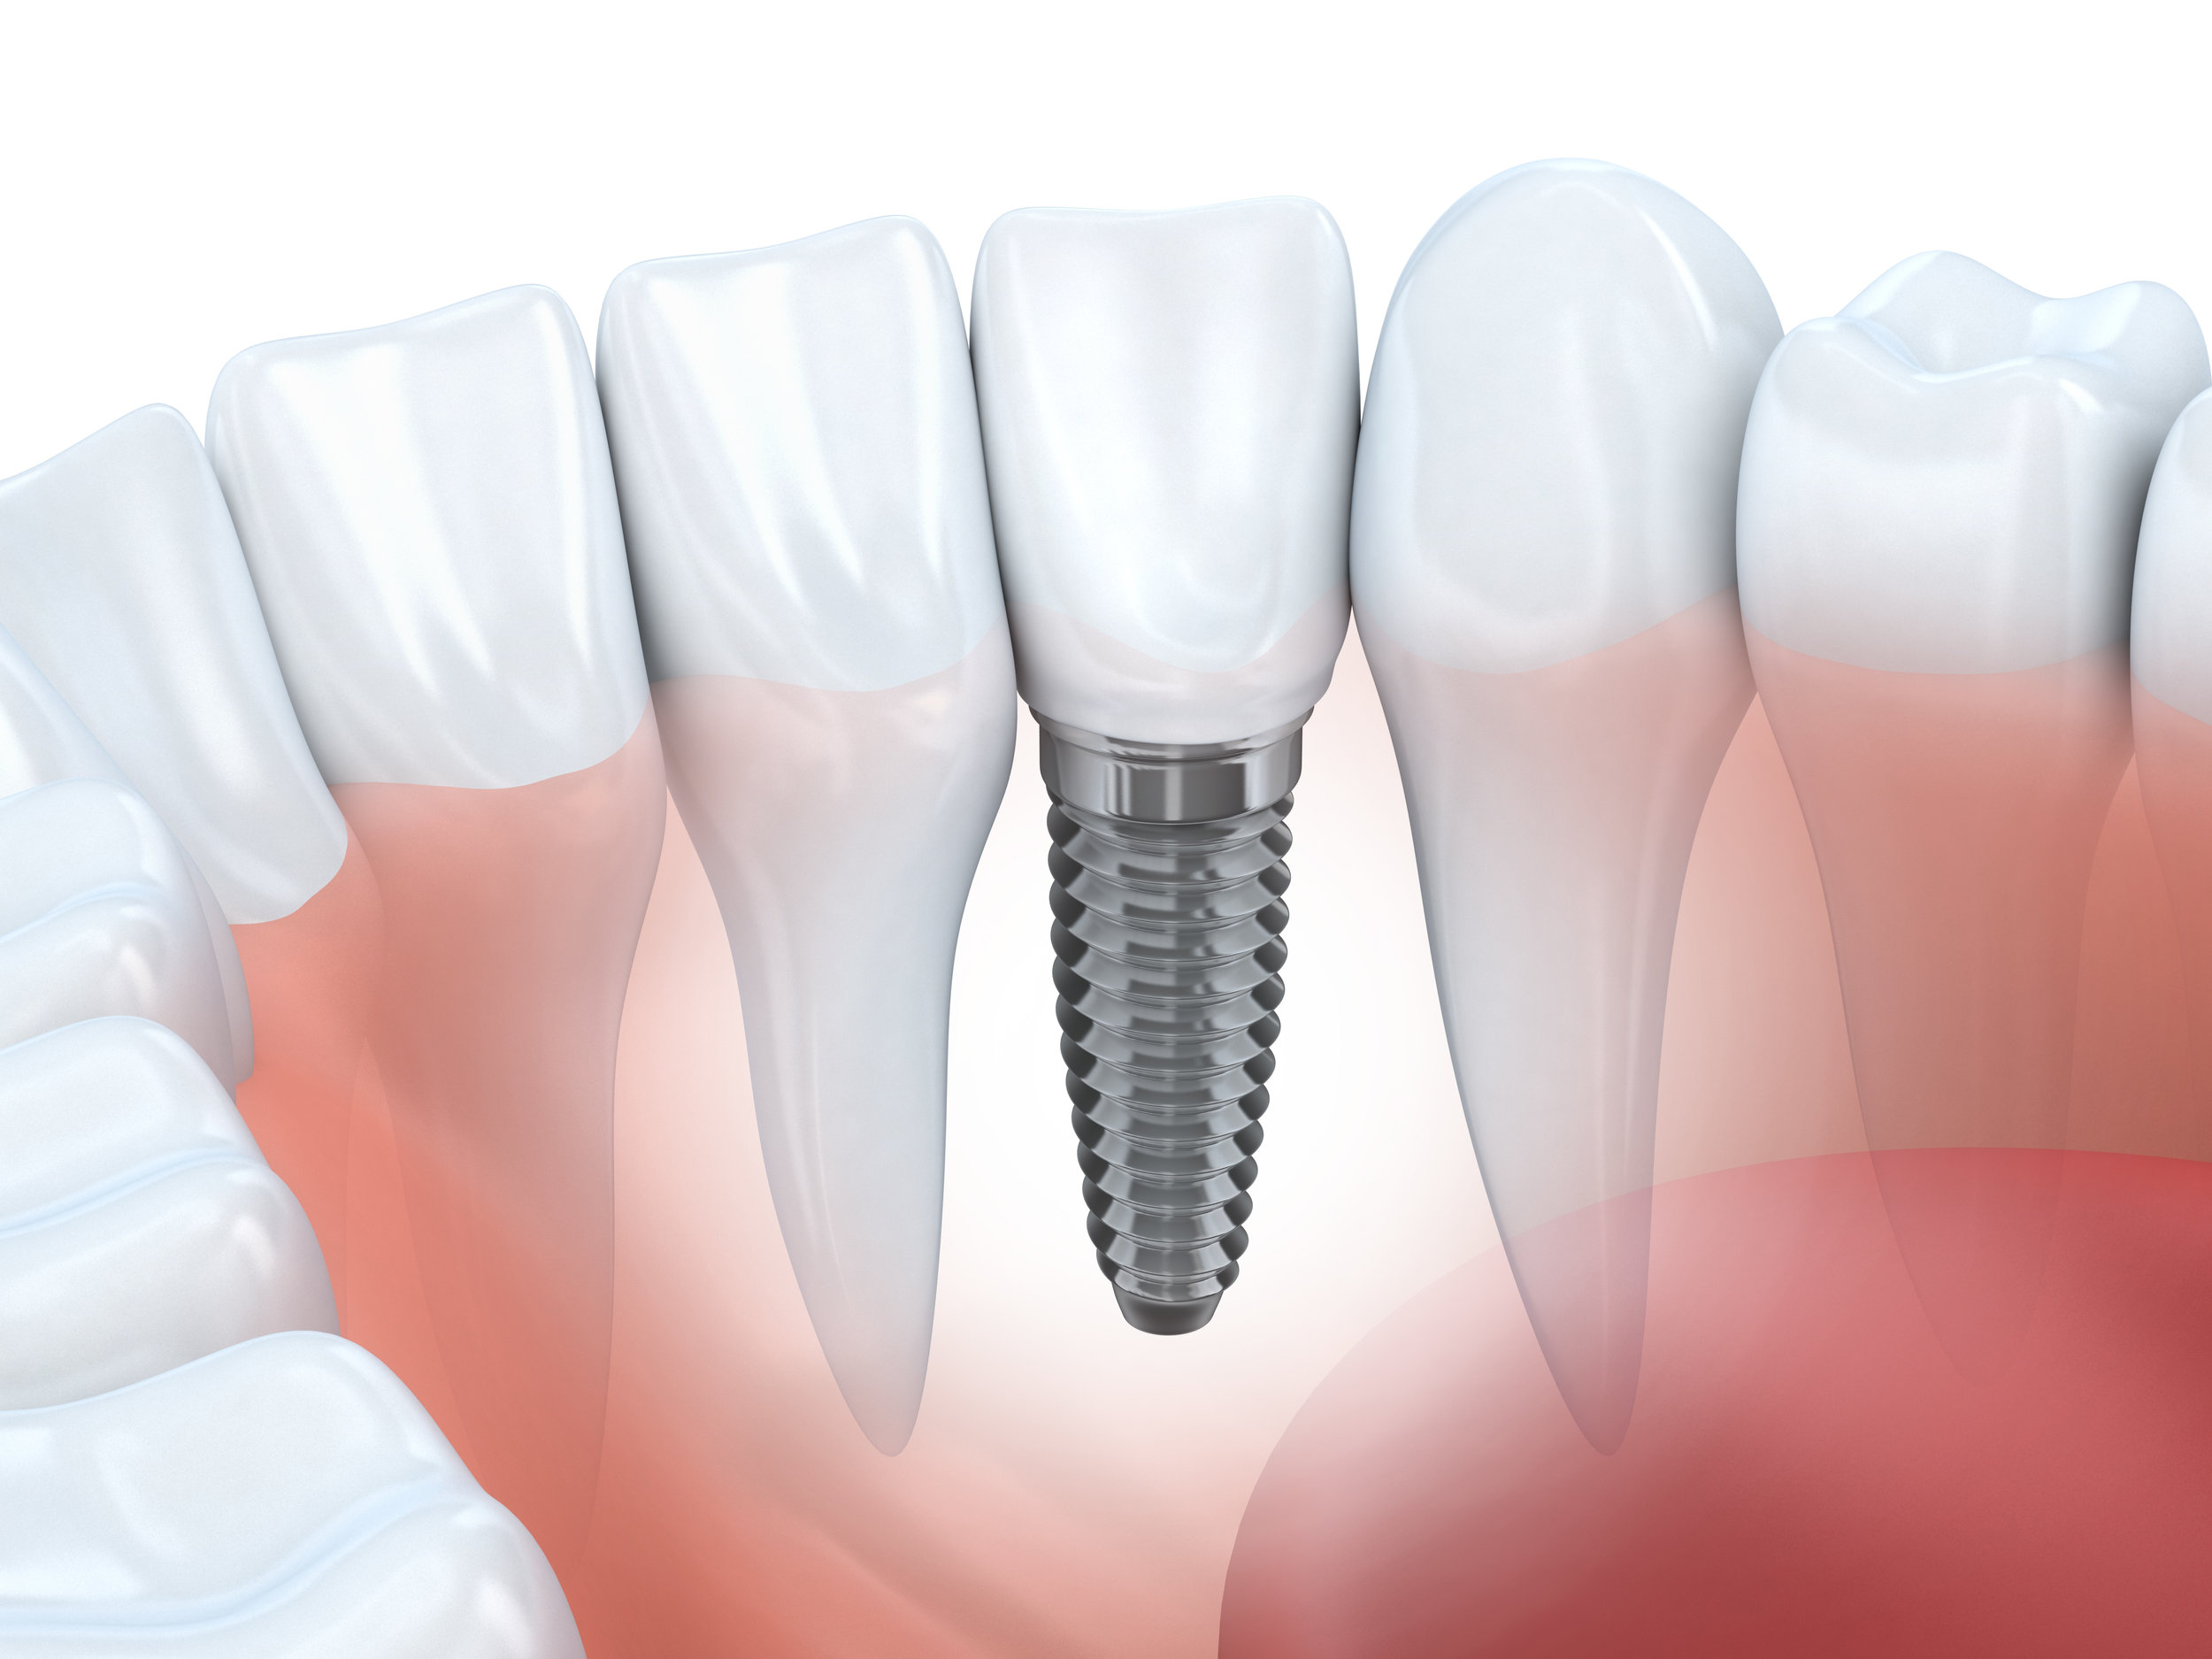 Dental Implants - Dental implants provide a long term solution for replacing missing teeth. Unlike fixed bridges or removable dentures, implants will not affect your neighboring healthy teeth ore lead to bone loss in the jaw.